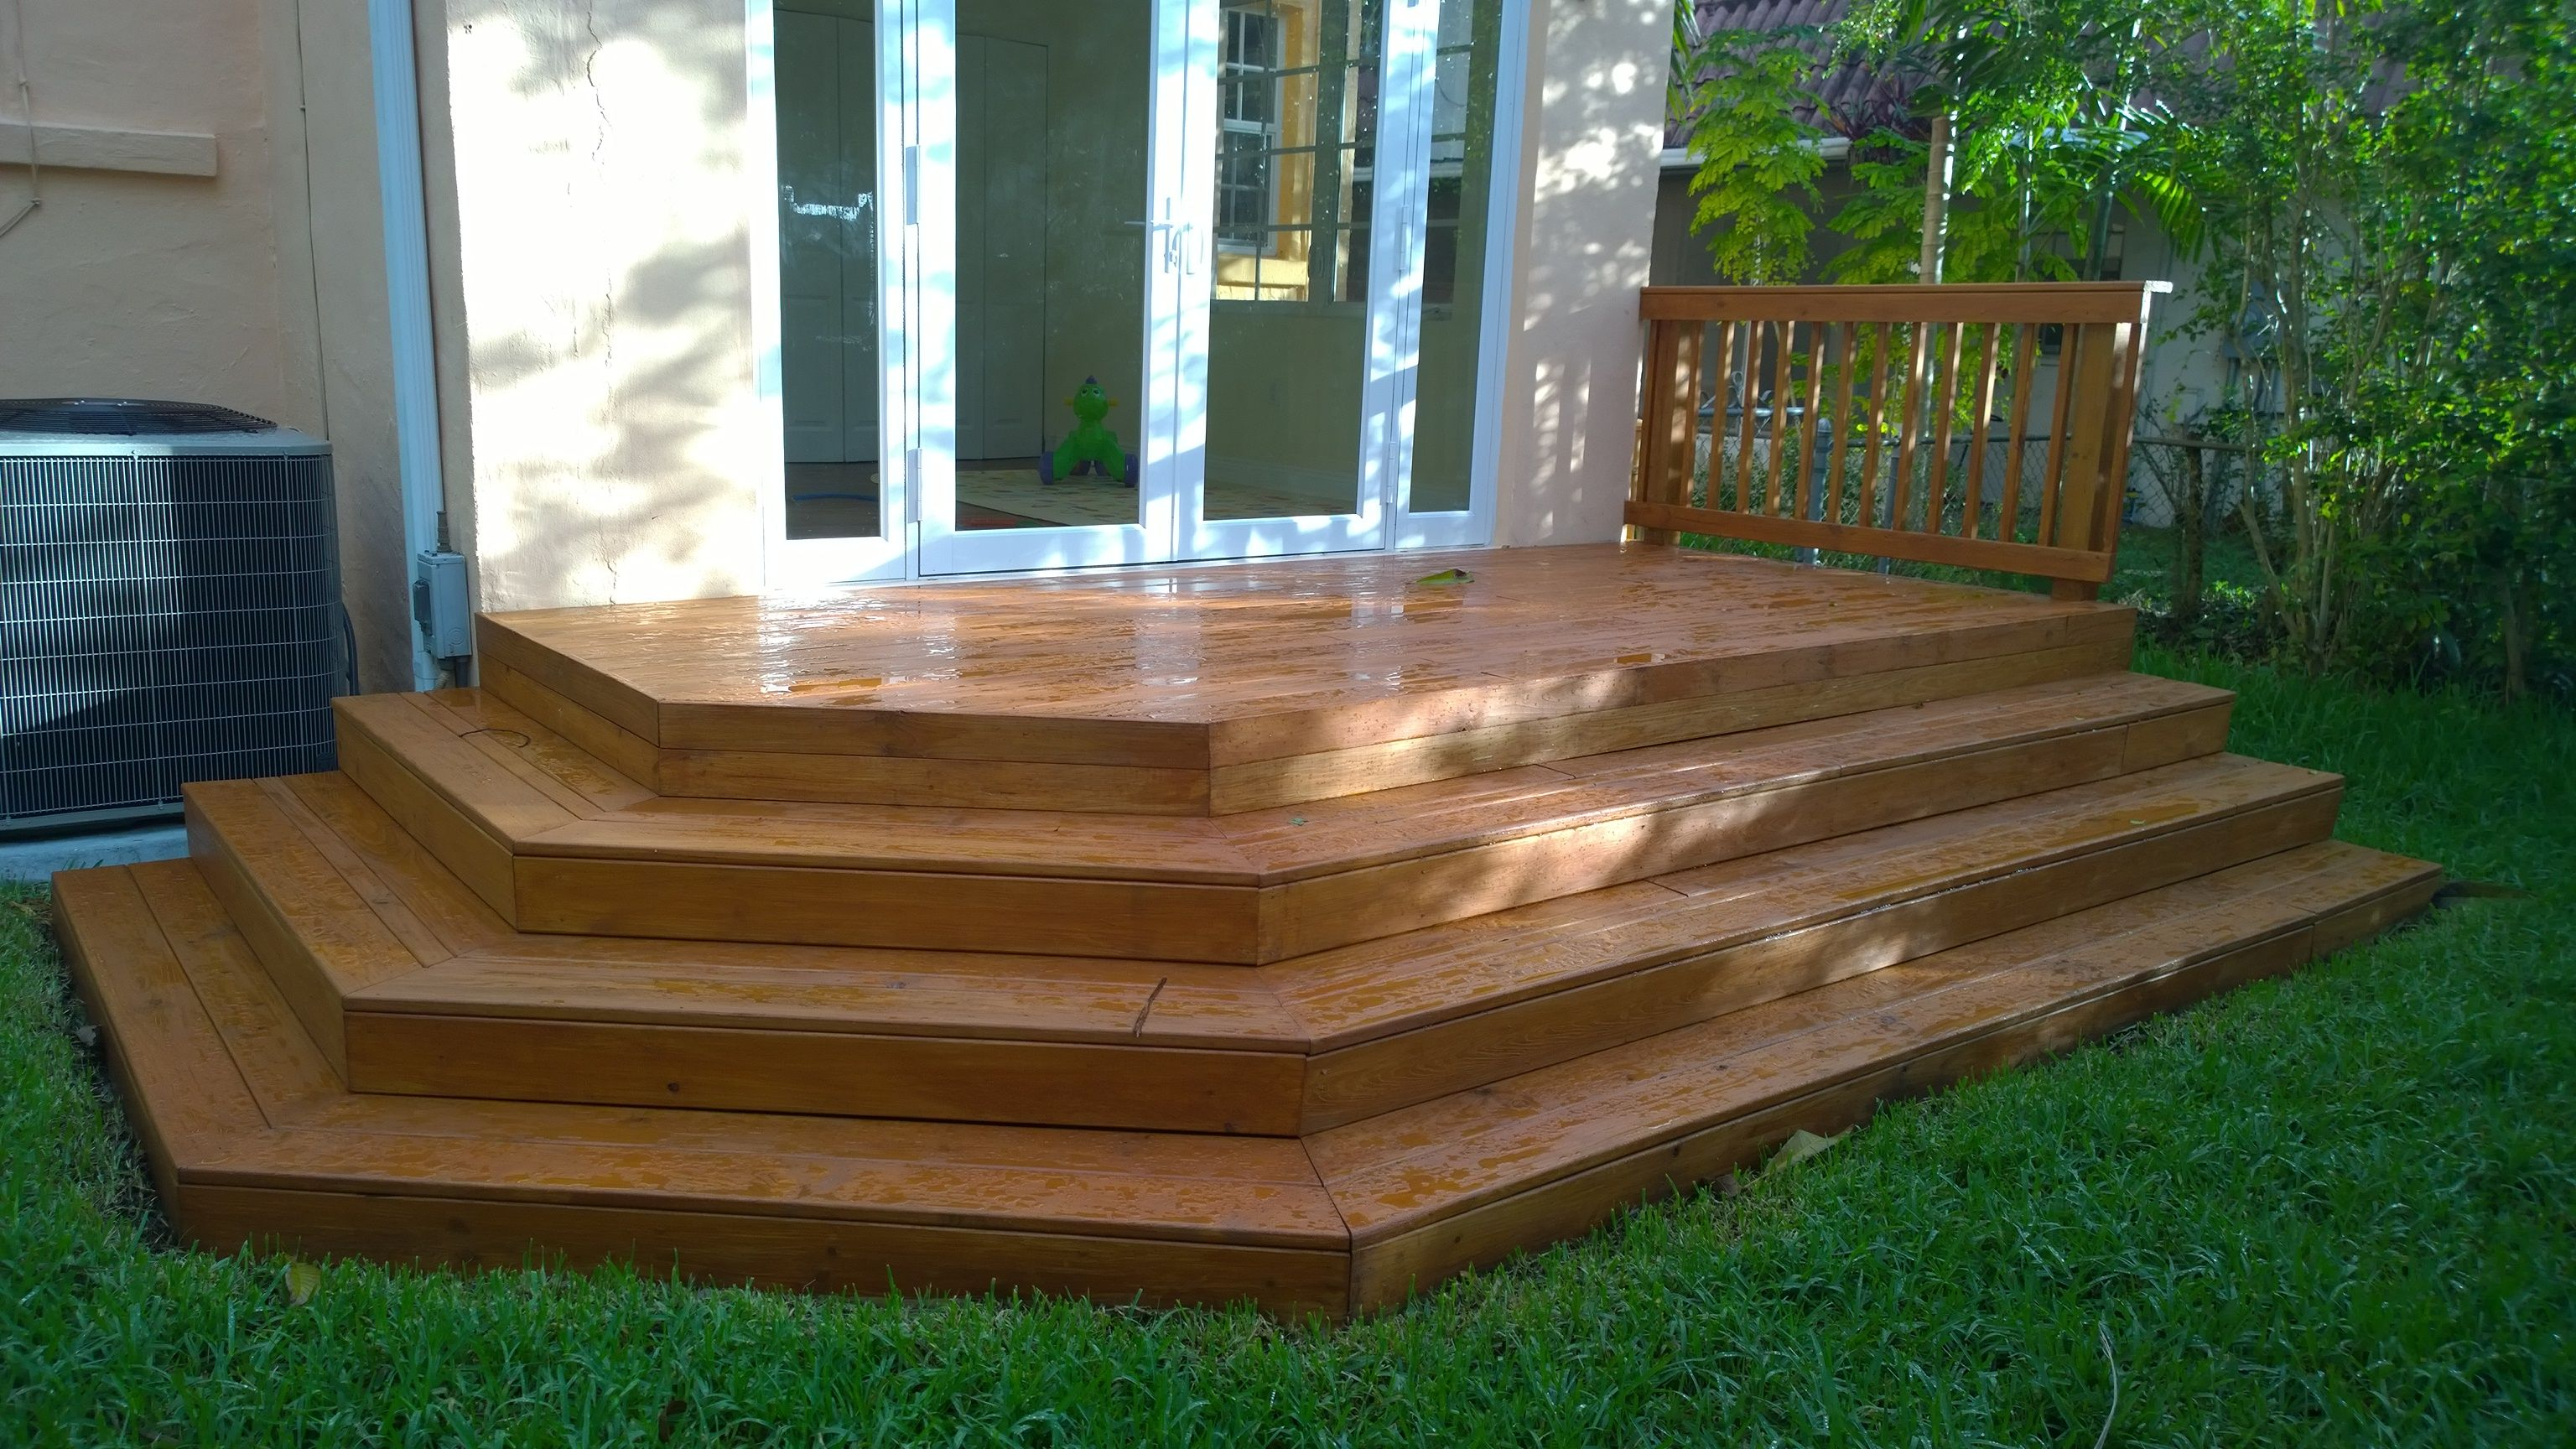 pressure treated wood deck with wrap around stair recent